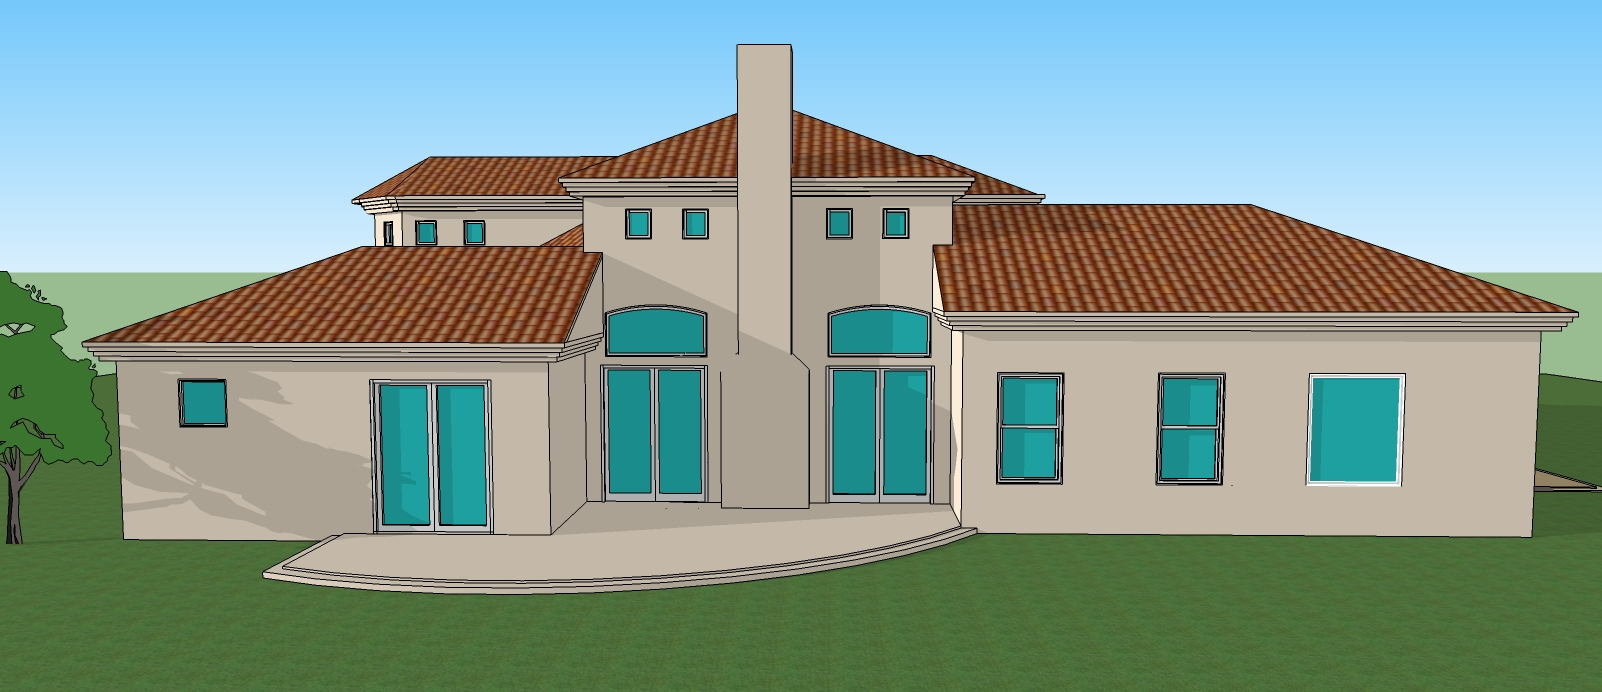 Simple 3d 3 Bedroom House Plans And View Drawings